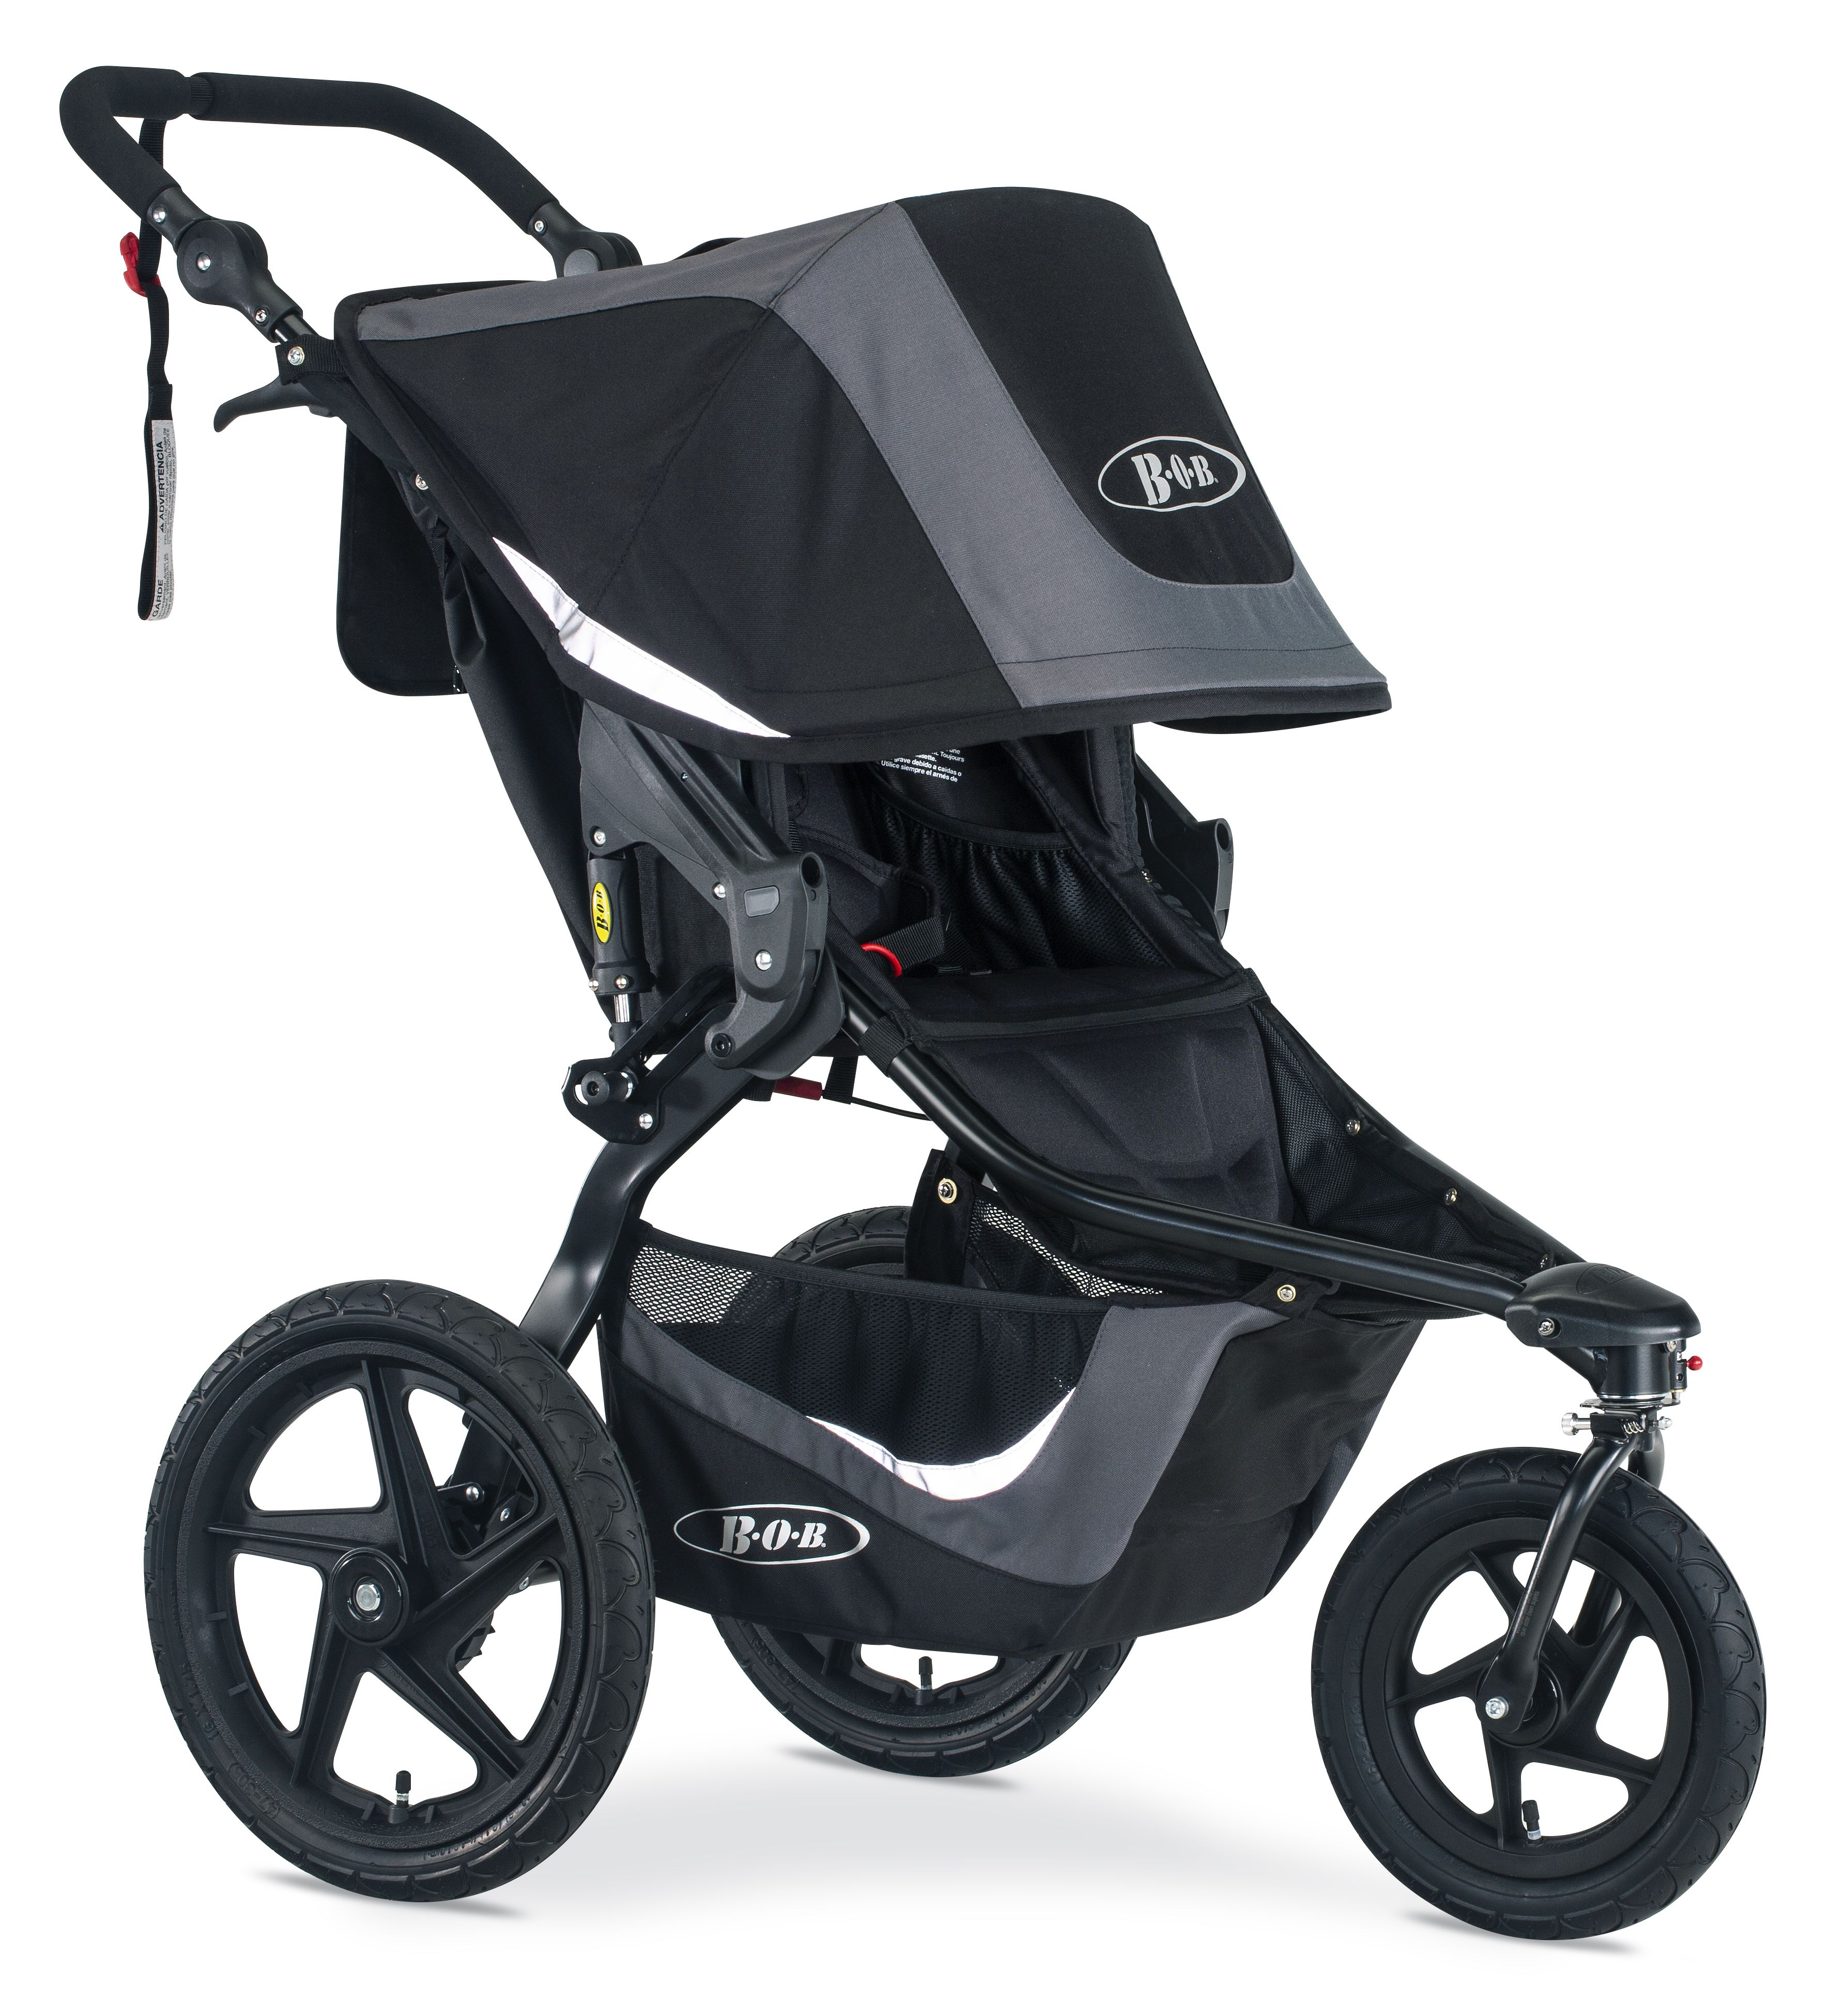 Carriage Type Strollers Mountain Bike Style Suspension Air Filled Tires Provide An